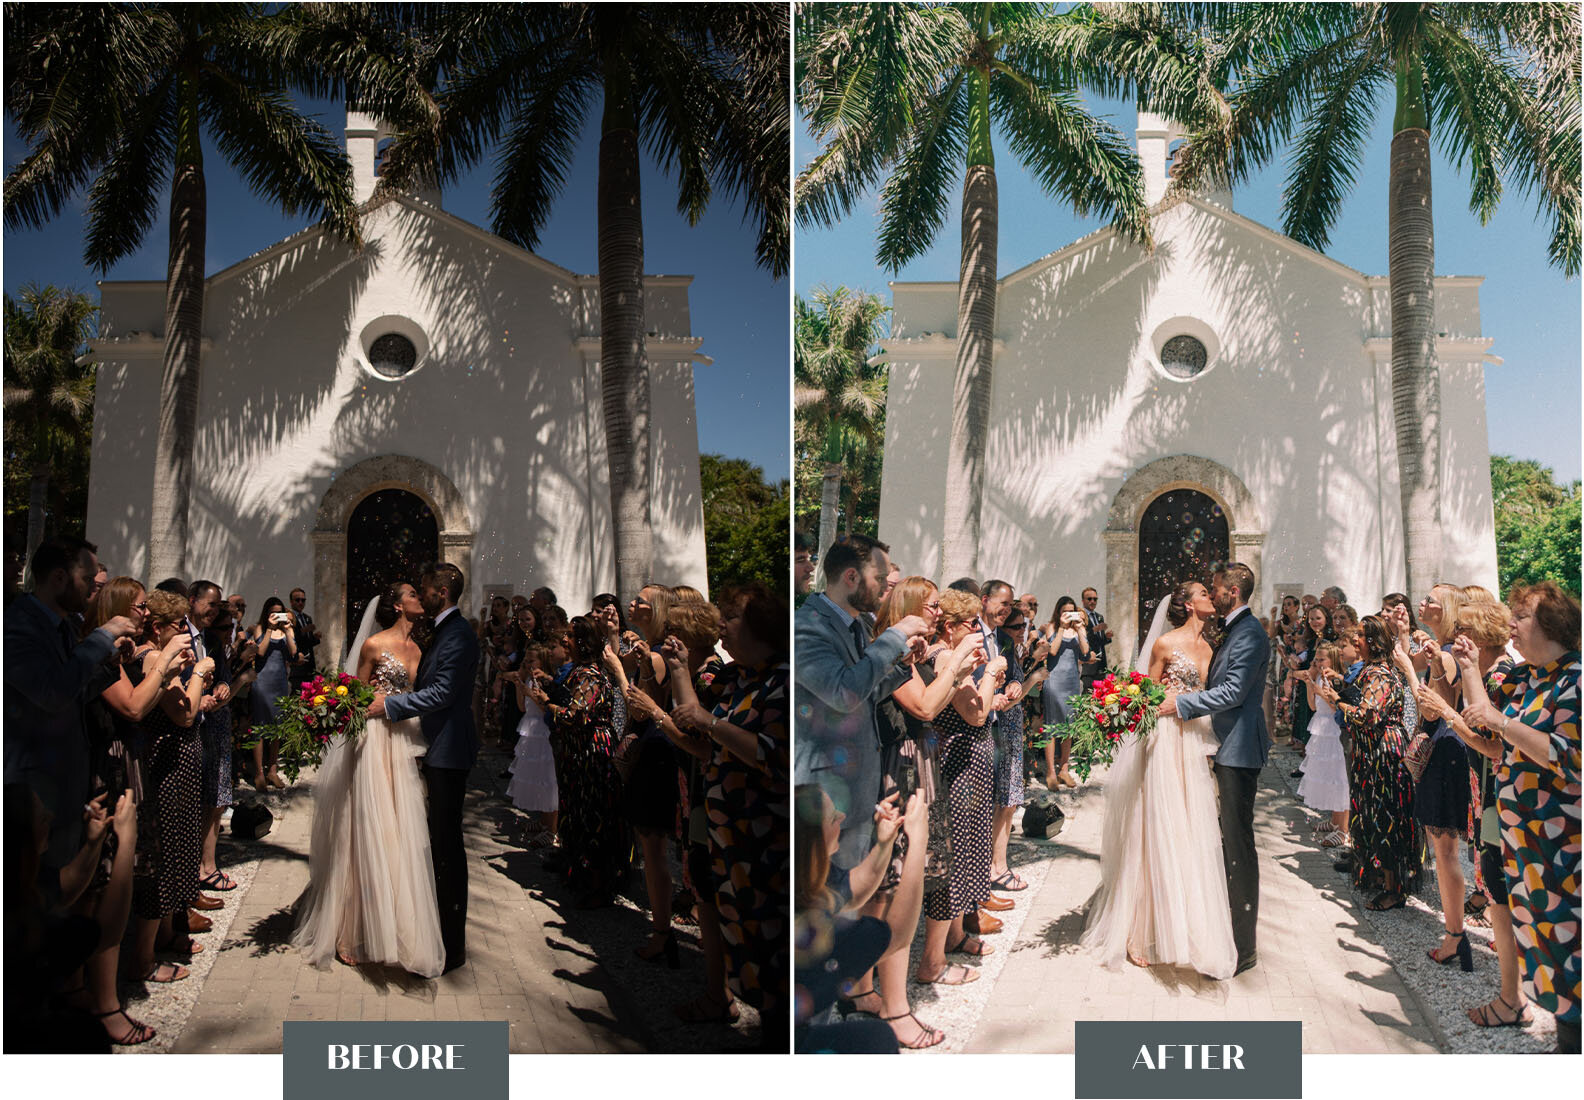 goodlight presets before after color pack 1 - 2.jpg